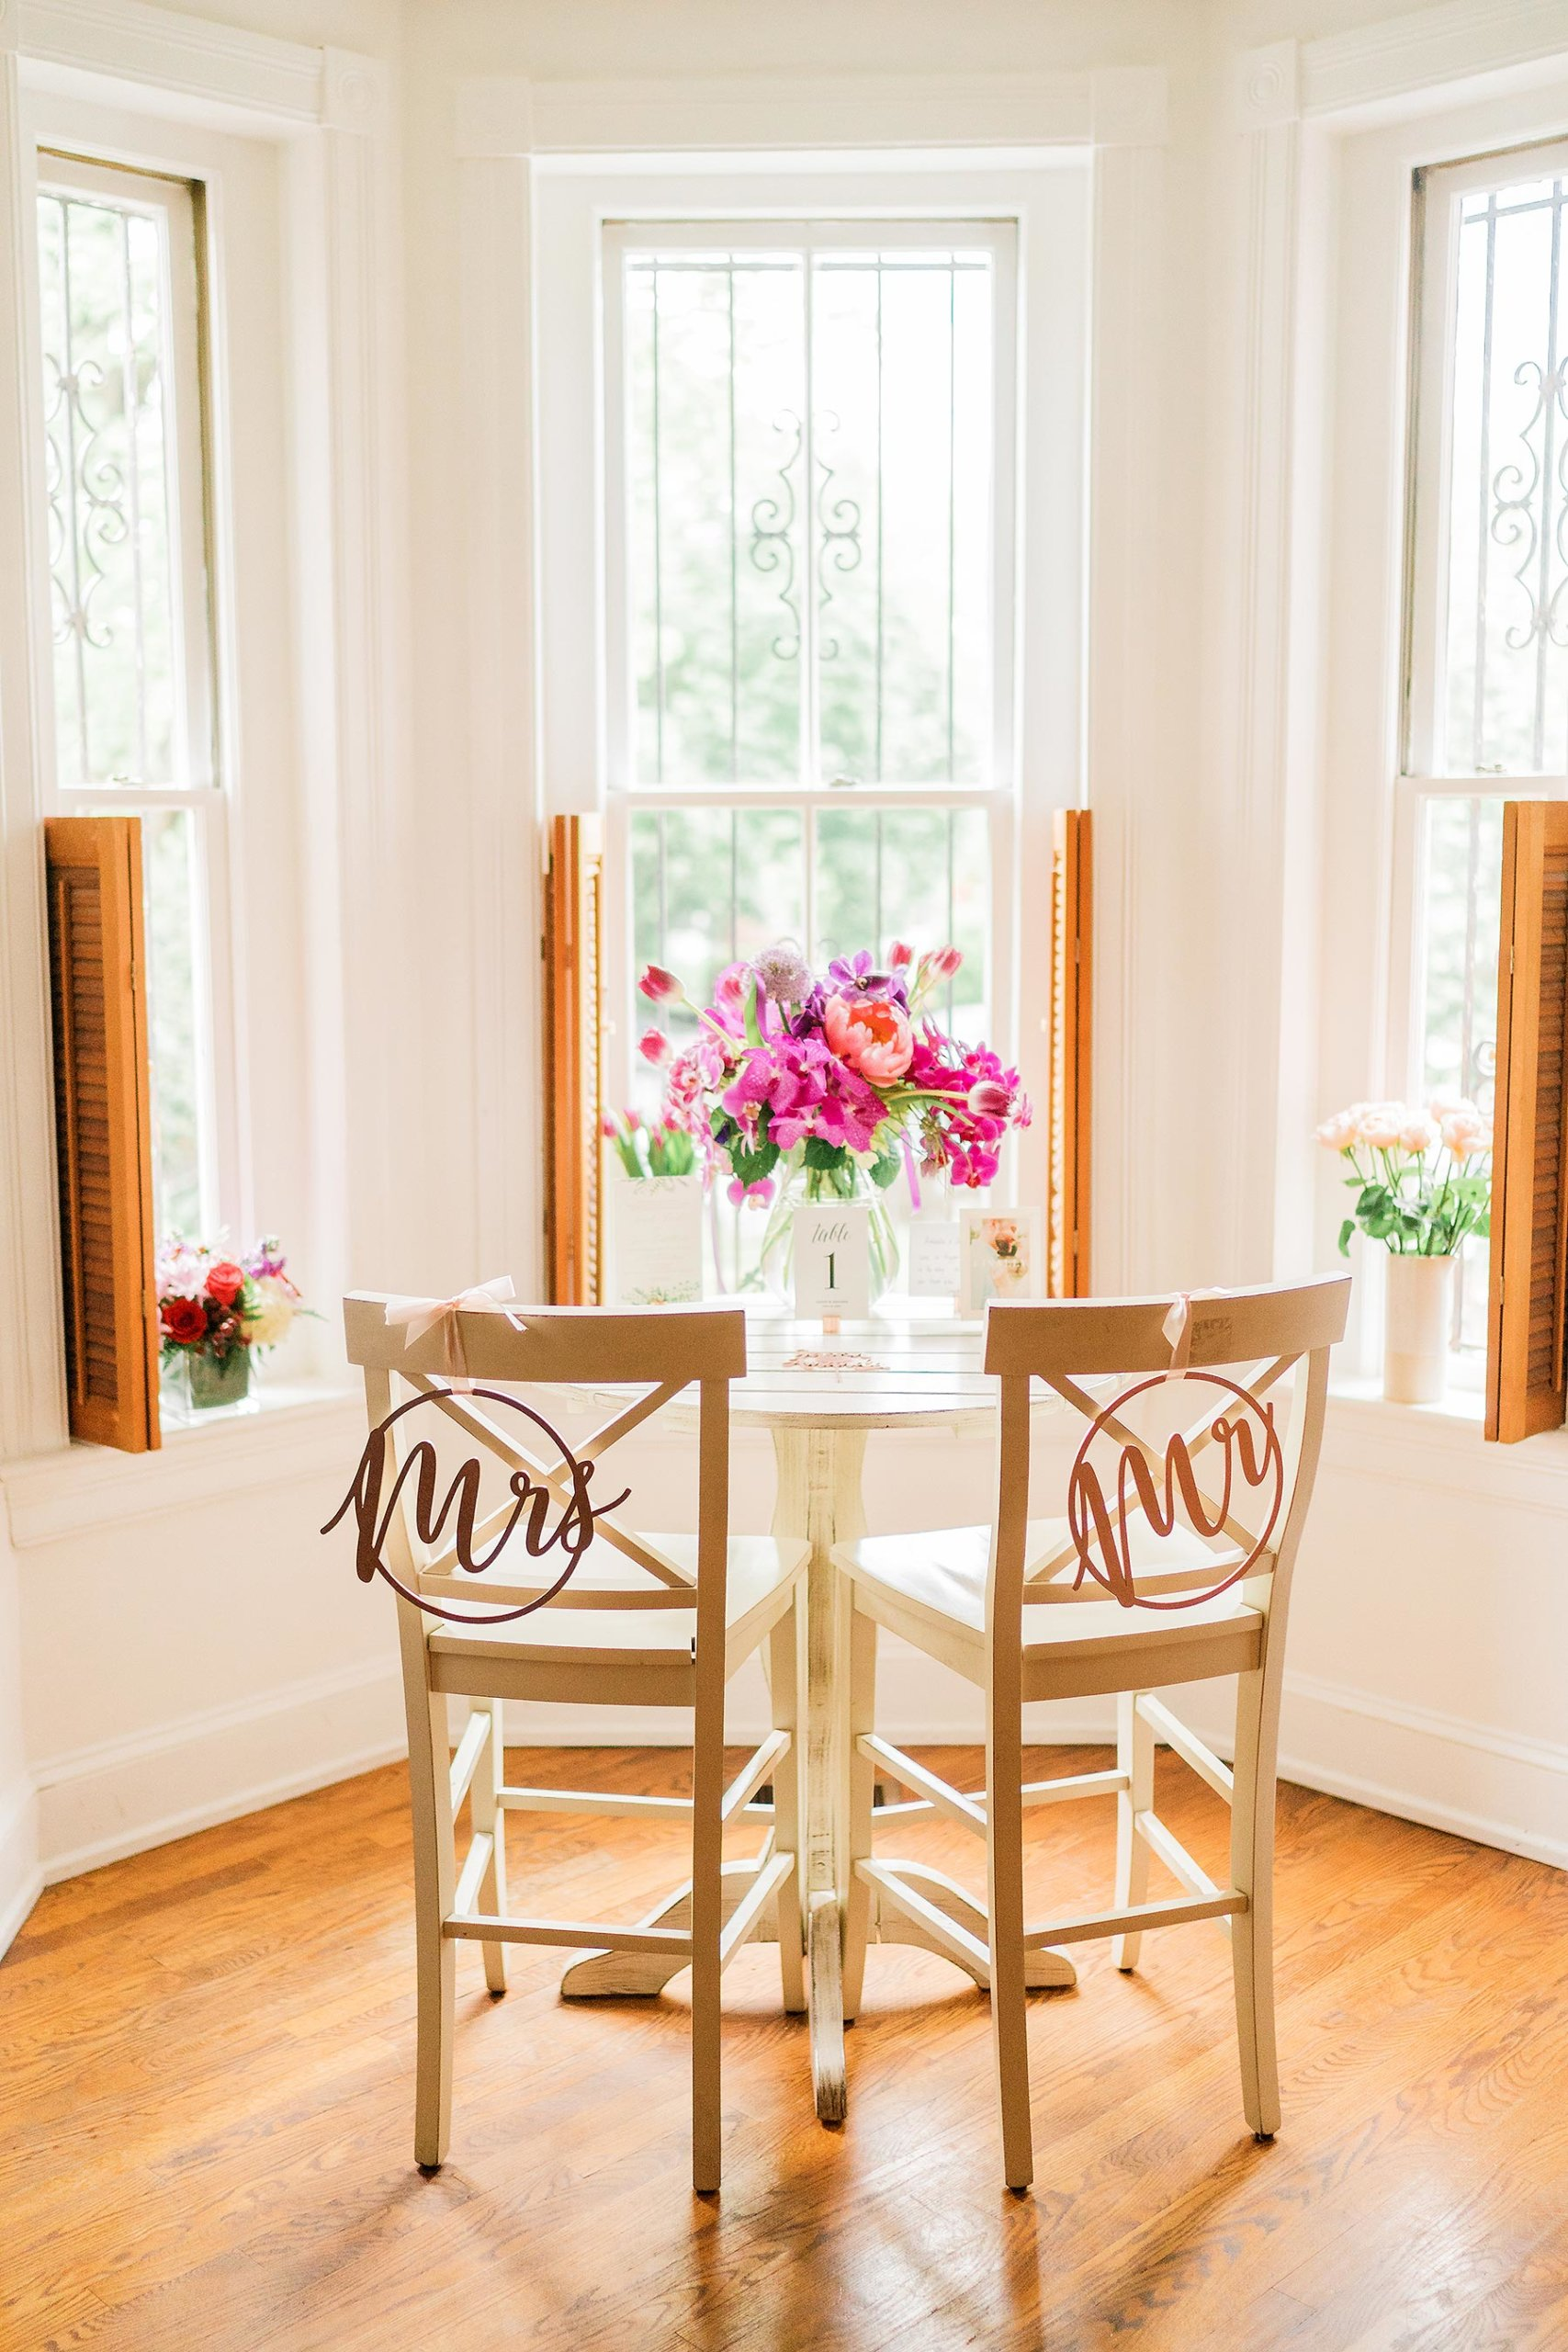 makeshift sweetheart table at home during at home zoom wedding on capitol hill by Washington DC Wedding Photographer Adam Mason